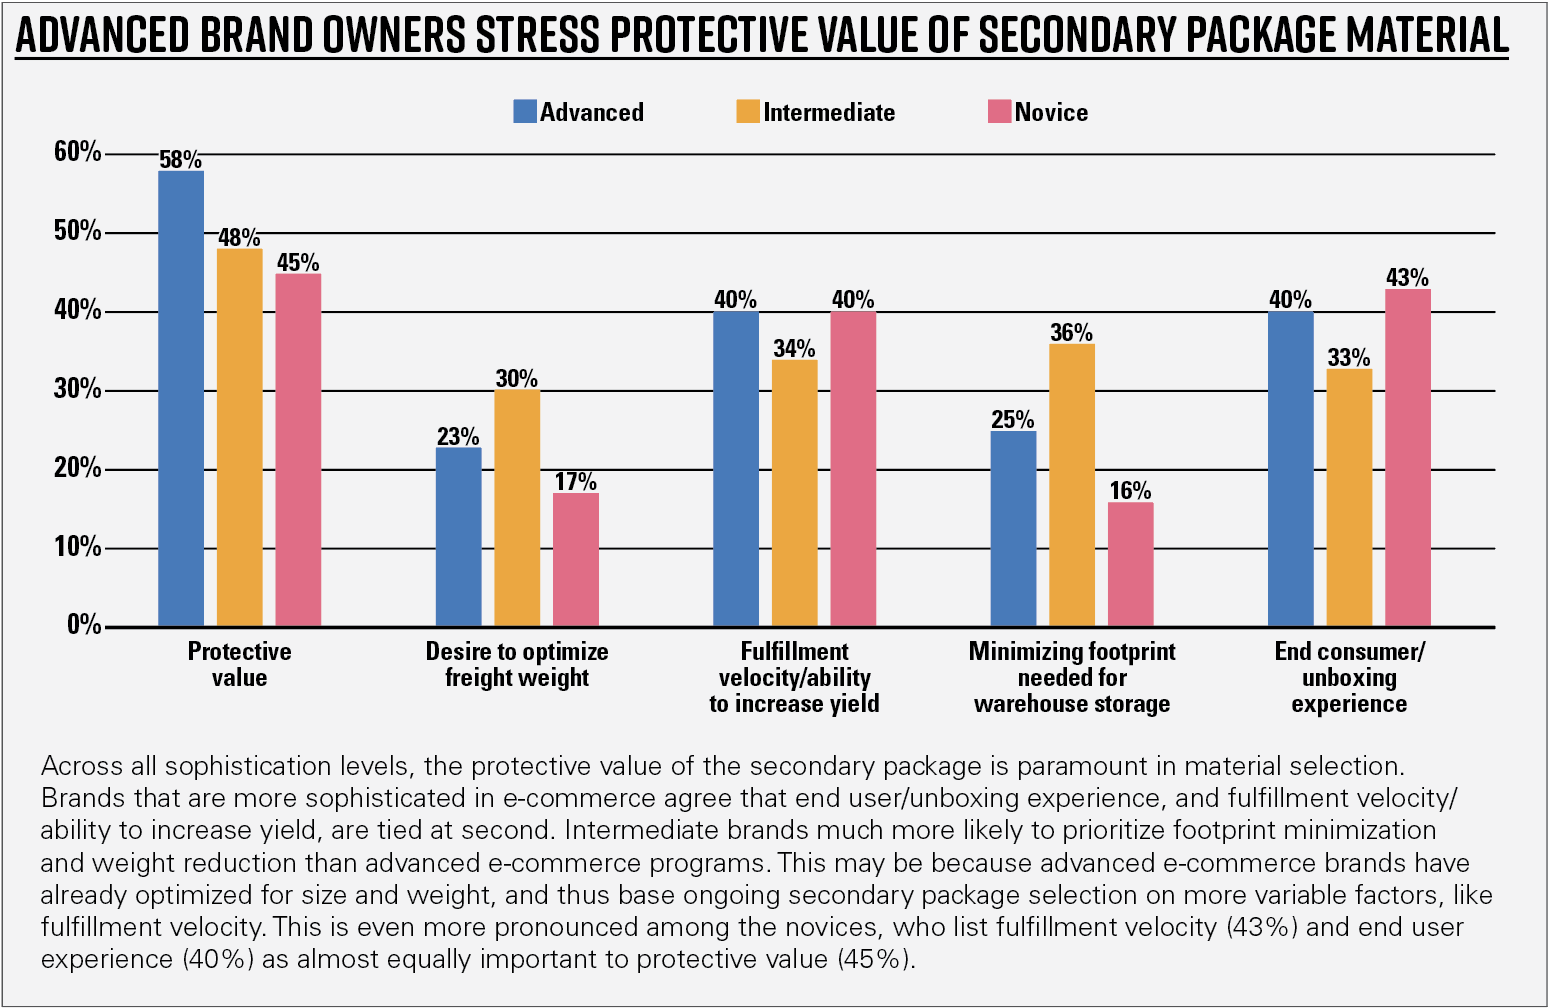 Chart 14—Advanced brand owners stress protective value of secondary package material